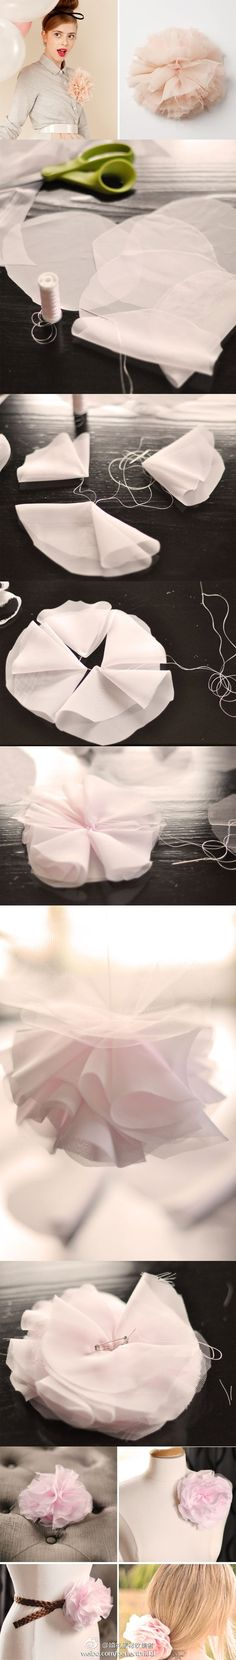 Inspirational Monday – Do it yourself (diy) Flower series – DIY Bridal Flowe. Inspirational Monday – Do it yourself (diy) Flower series – DIY Bridal Flower… Tulle Flowers, Bridal Flowers, Felt Flowers, Diy Flowers, Fabric Flowers, Paper Flowers, Chiffon Flowers, Pink Tulle, Diy Fleur